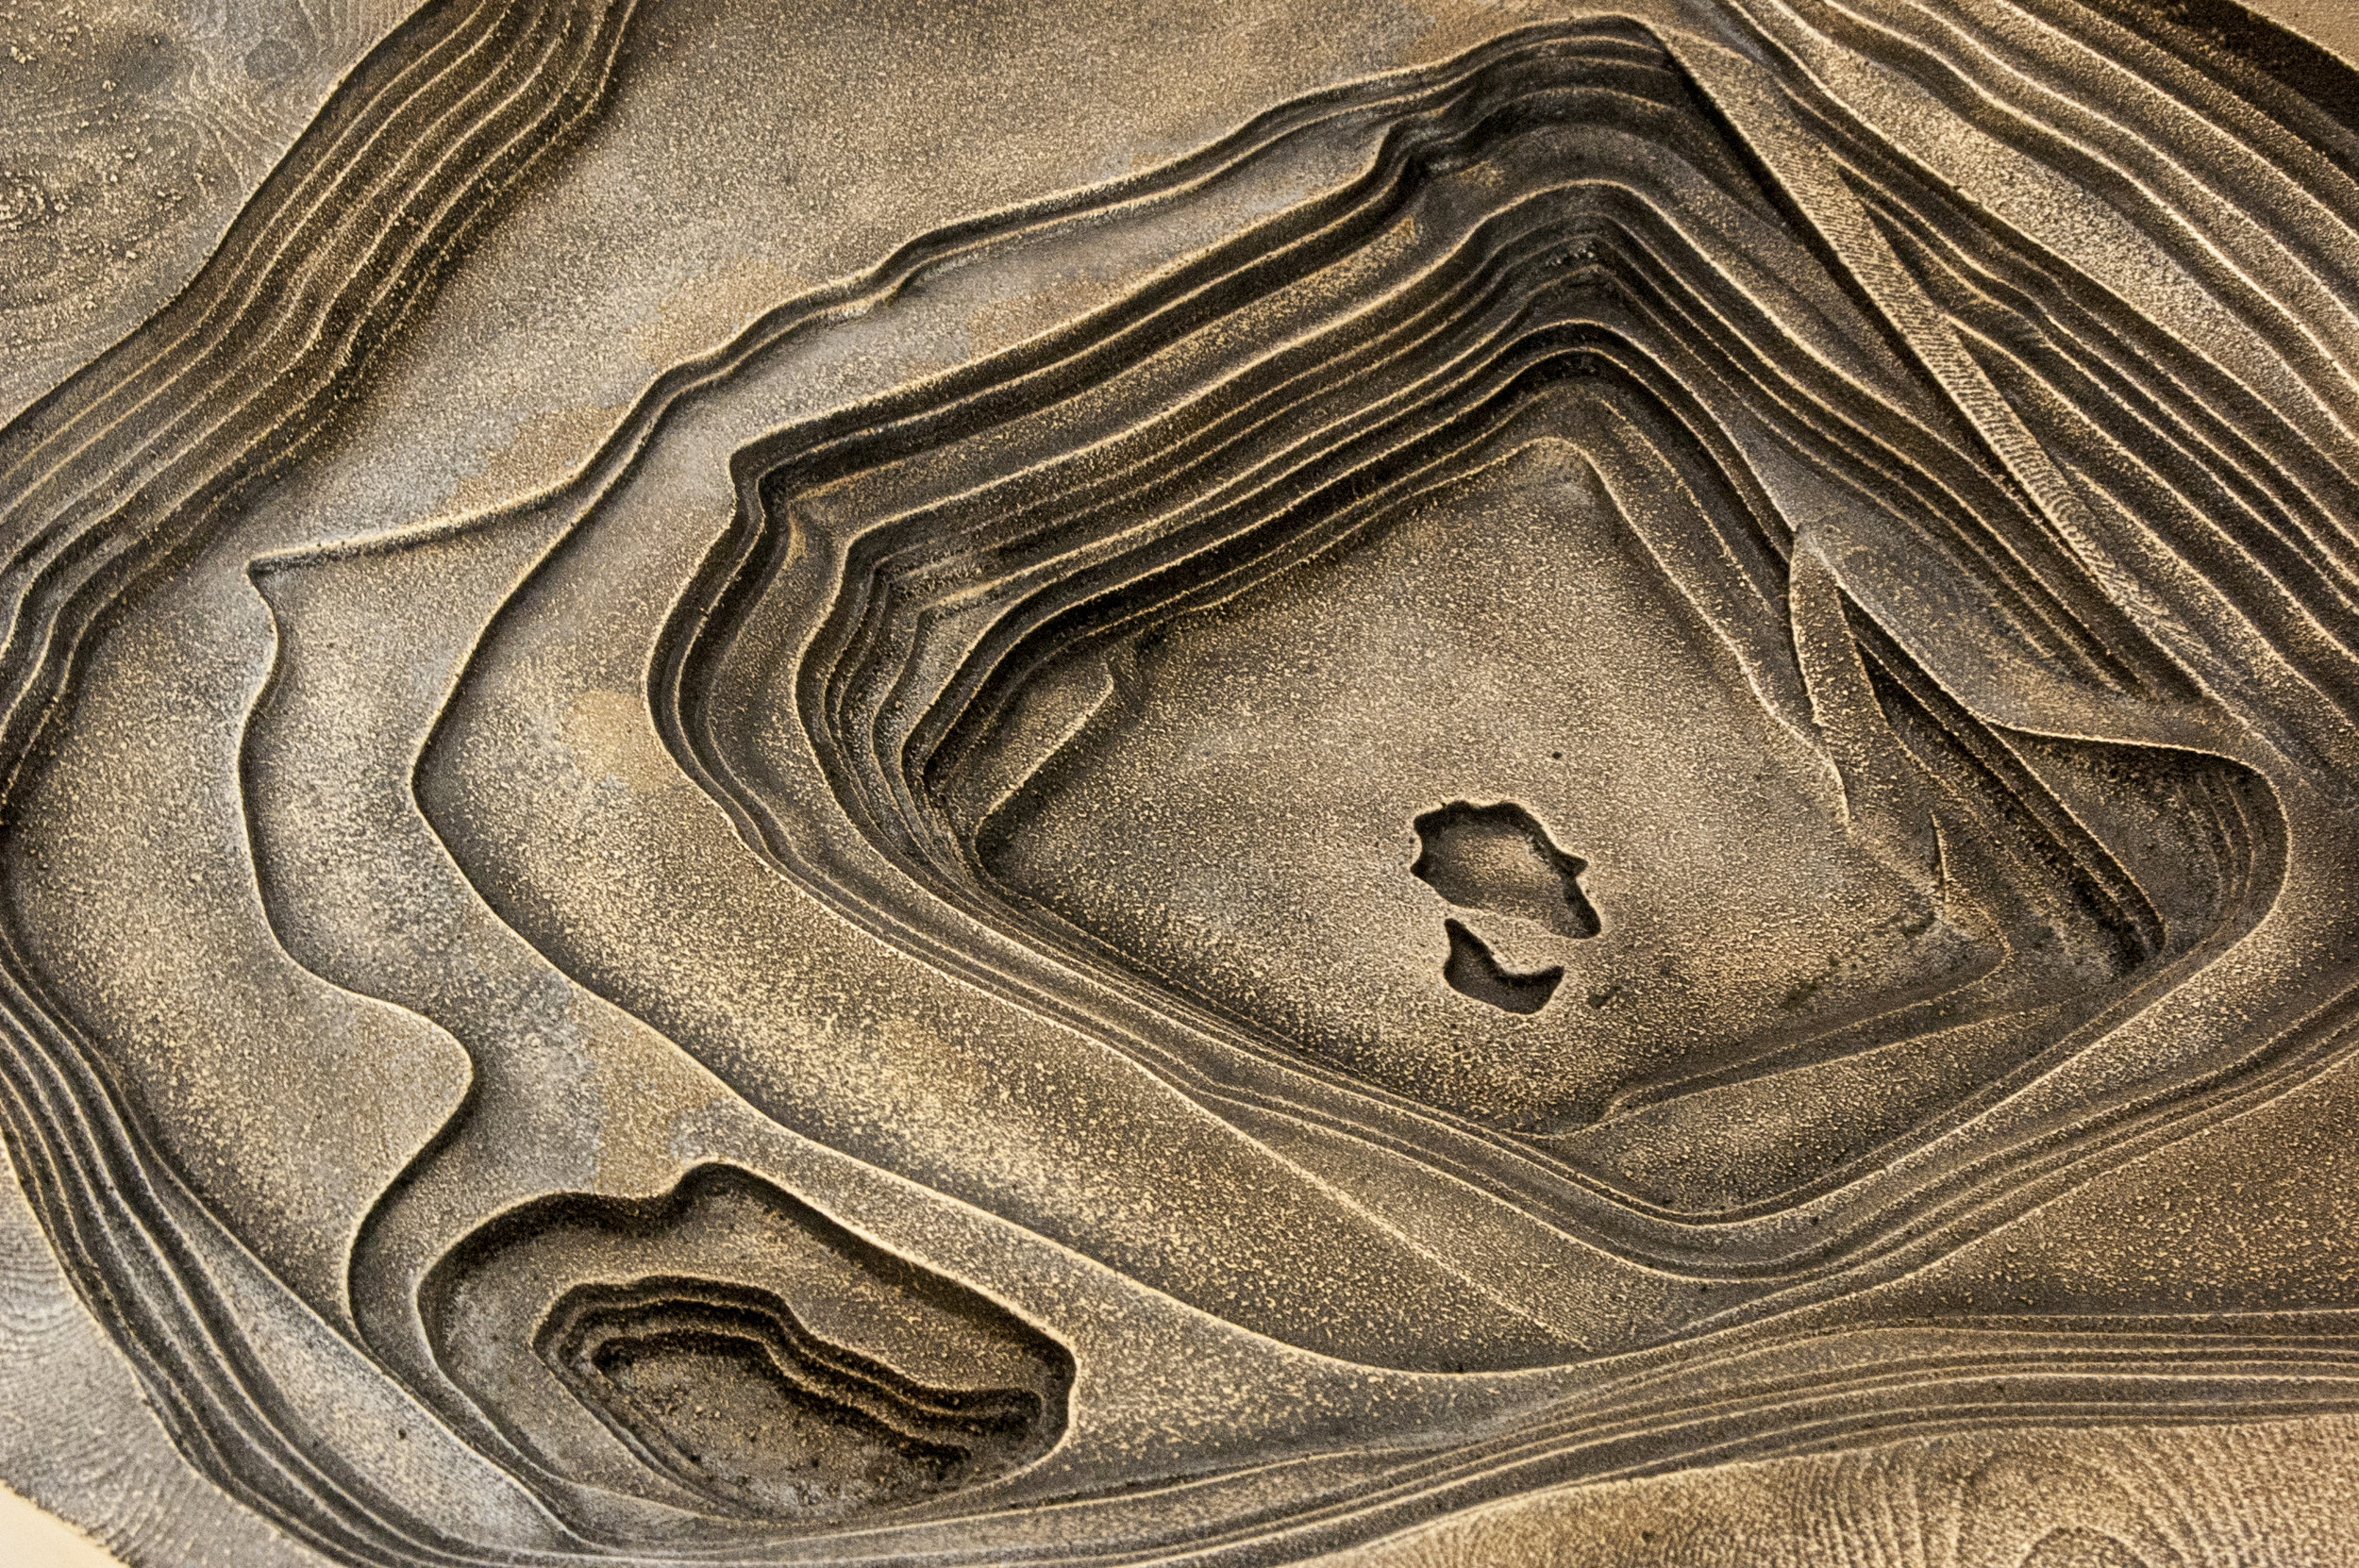 Copper Mining bowl detail 2 - David Derksen Design.jpg